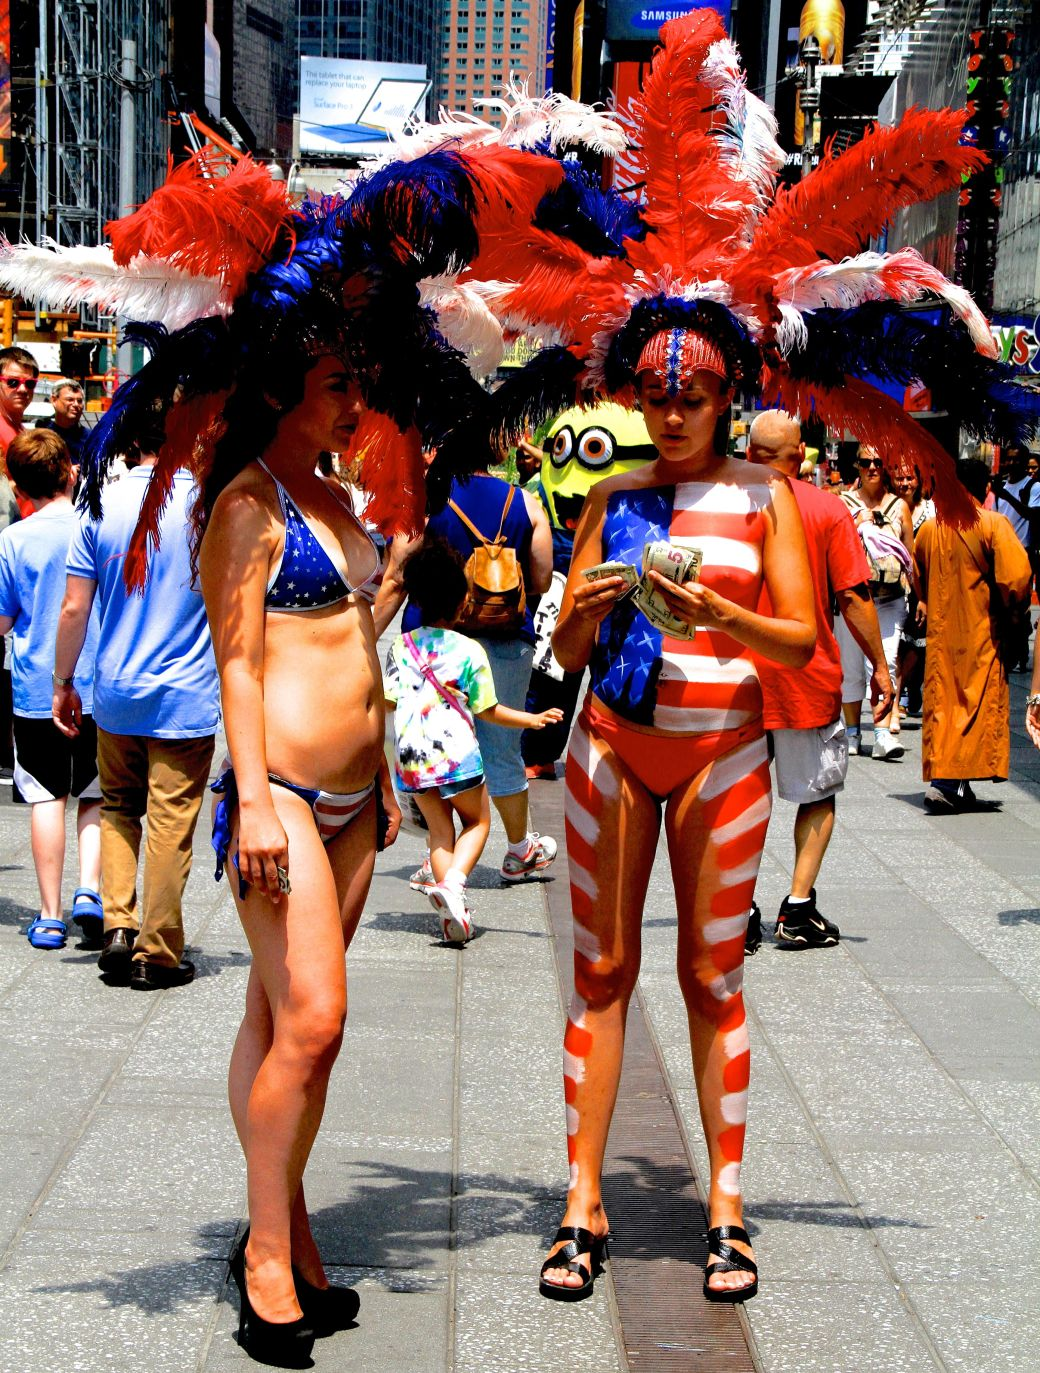 new york city times square woman in bikini naked woman